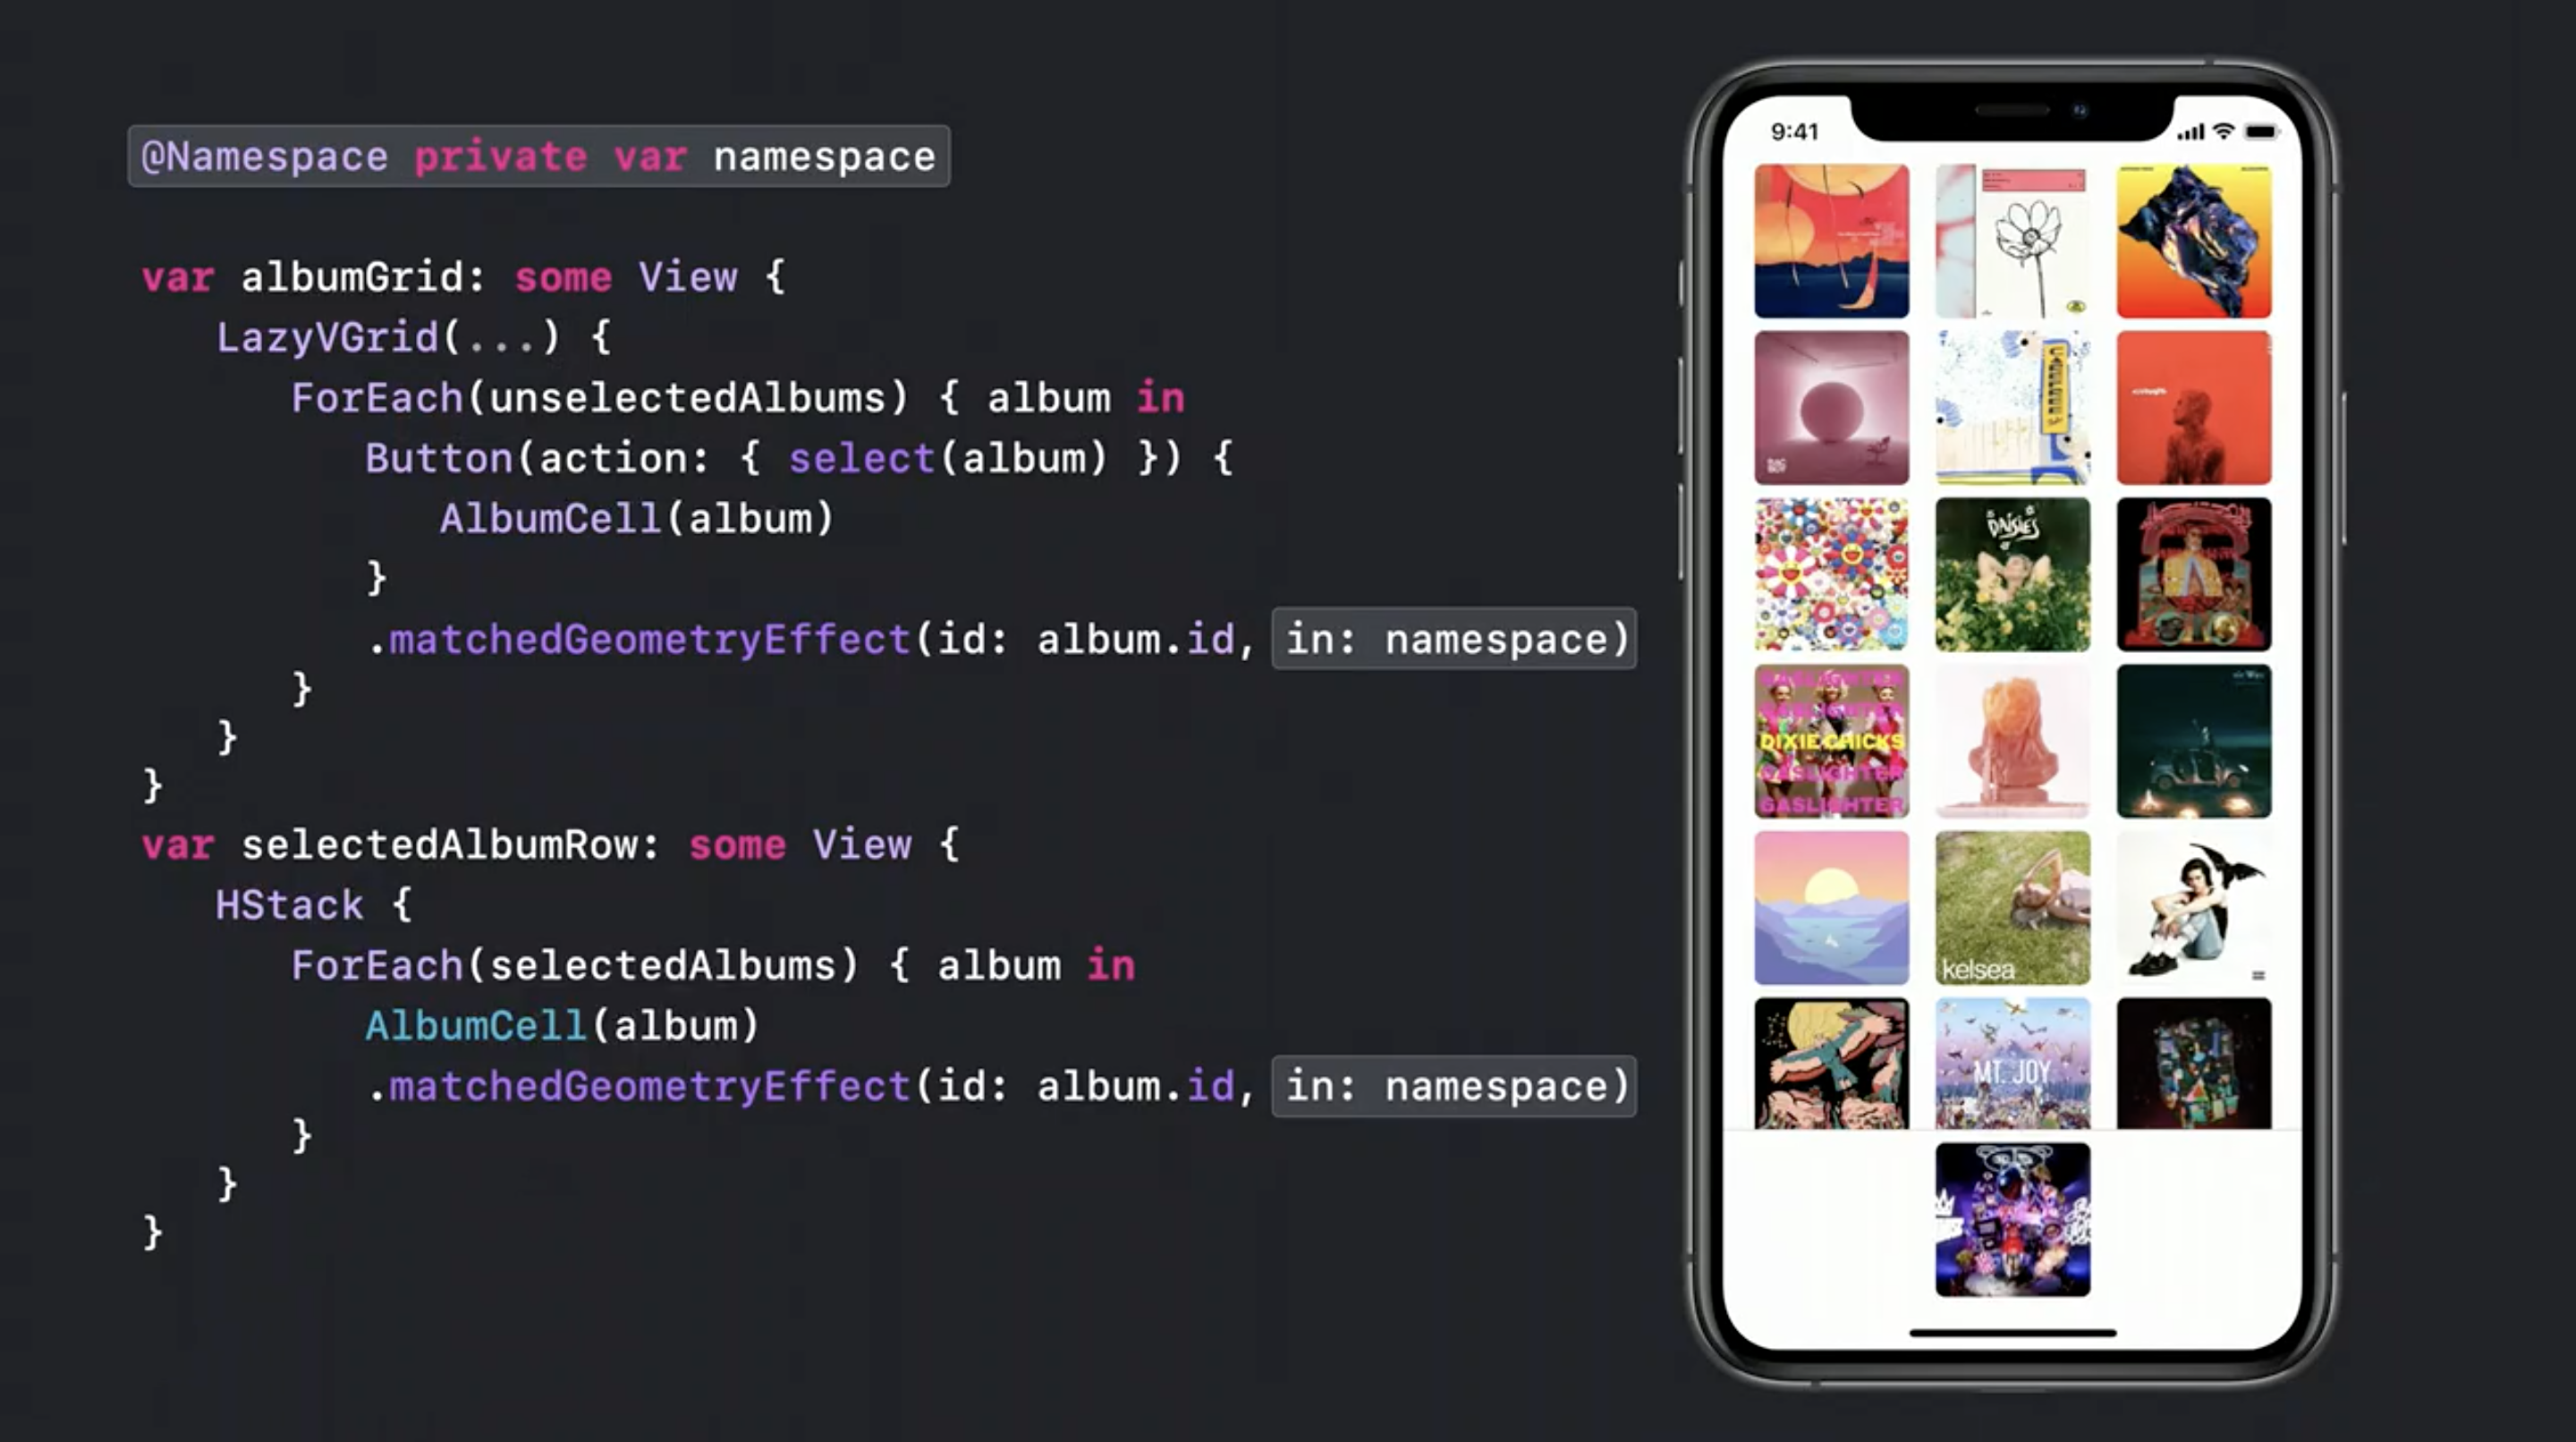 matchedGeometryEffect is WWDC20's session